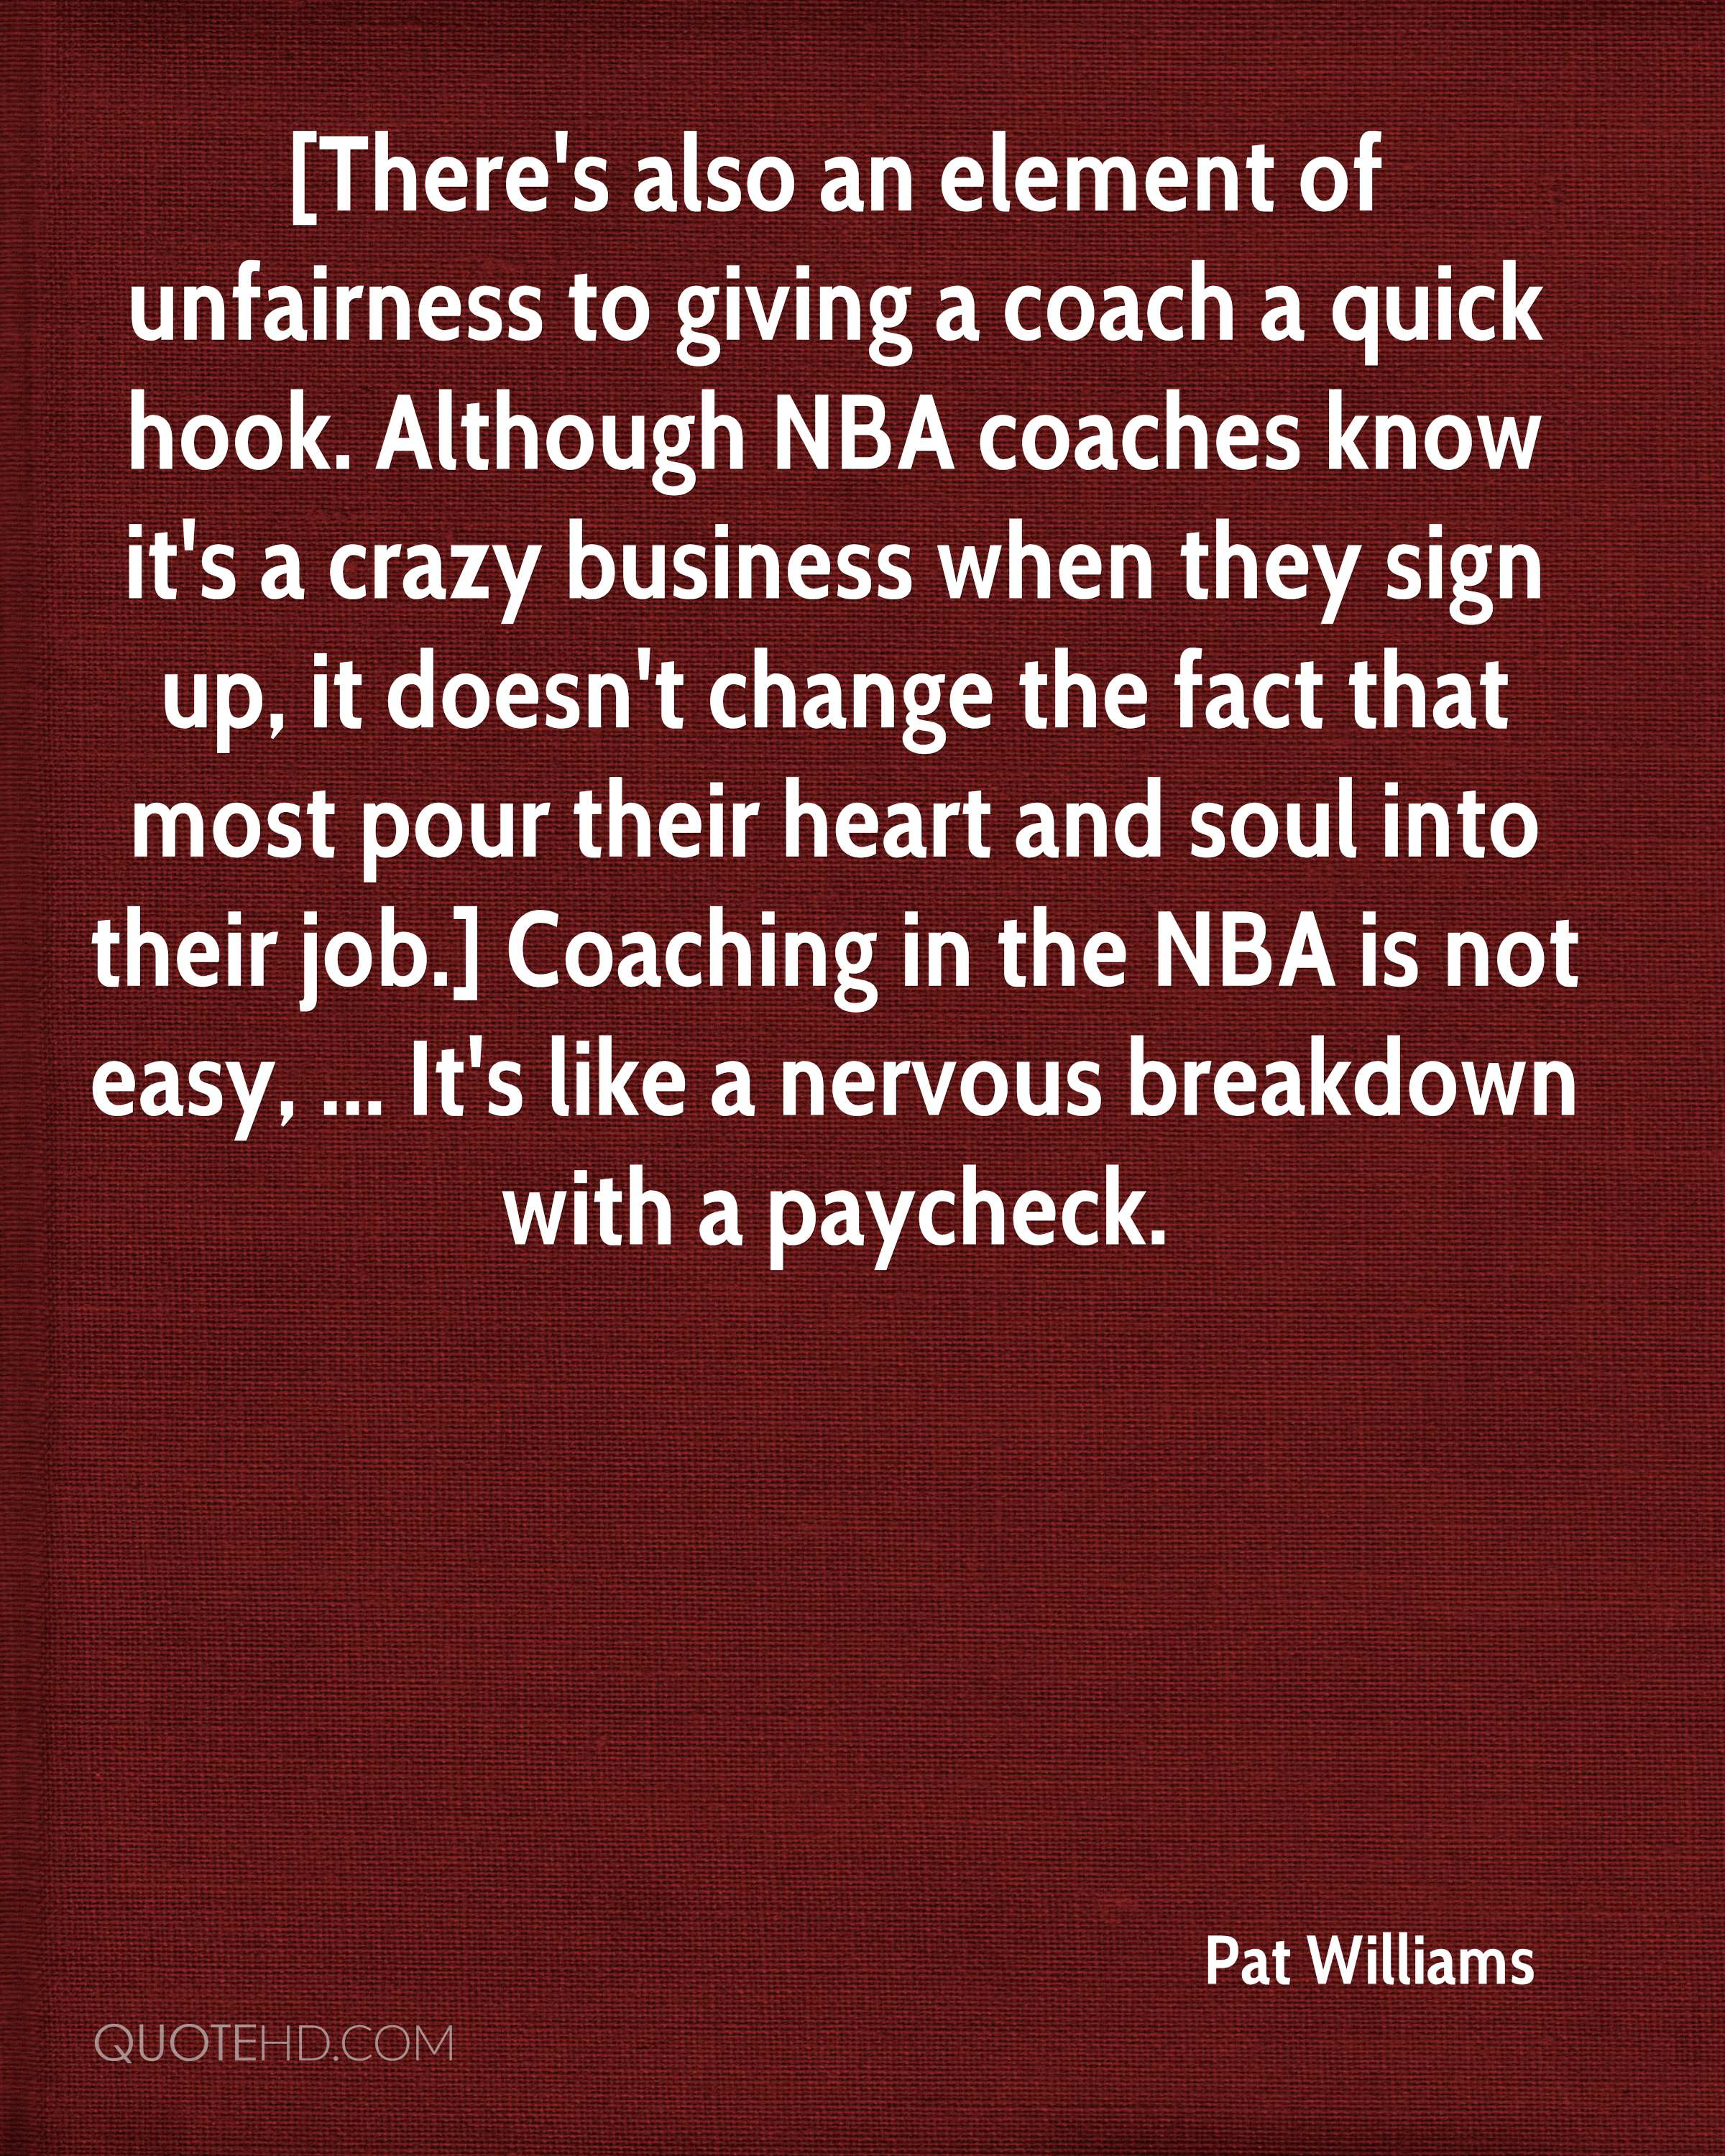 [There's also an element of unfairness to giving a coach a quick hook. Although NBA coaches know it's a crazy business when they sign up, it doesn't change the fact that most pour their heart and soul into their job.] Coaching in the NBA is not easy, ... It's like a nervous breakdown with a paycheck.